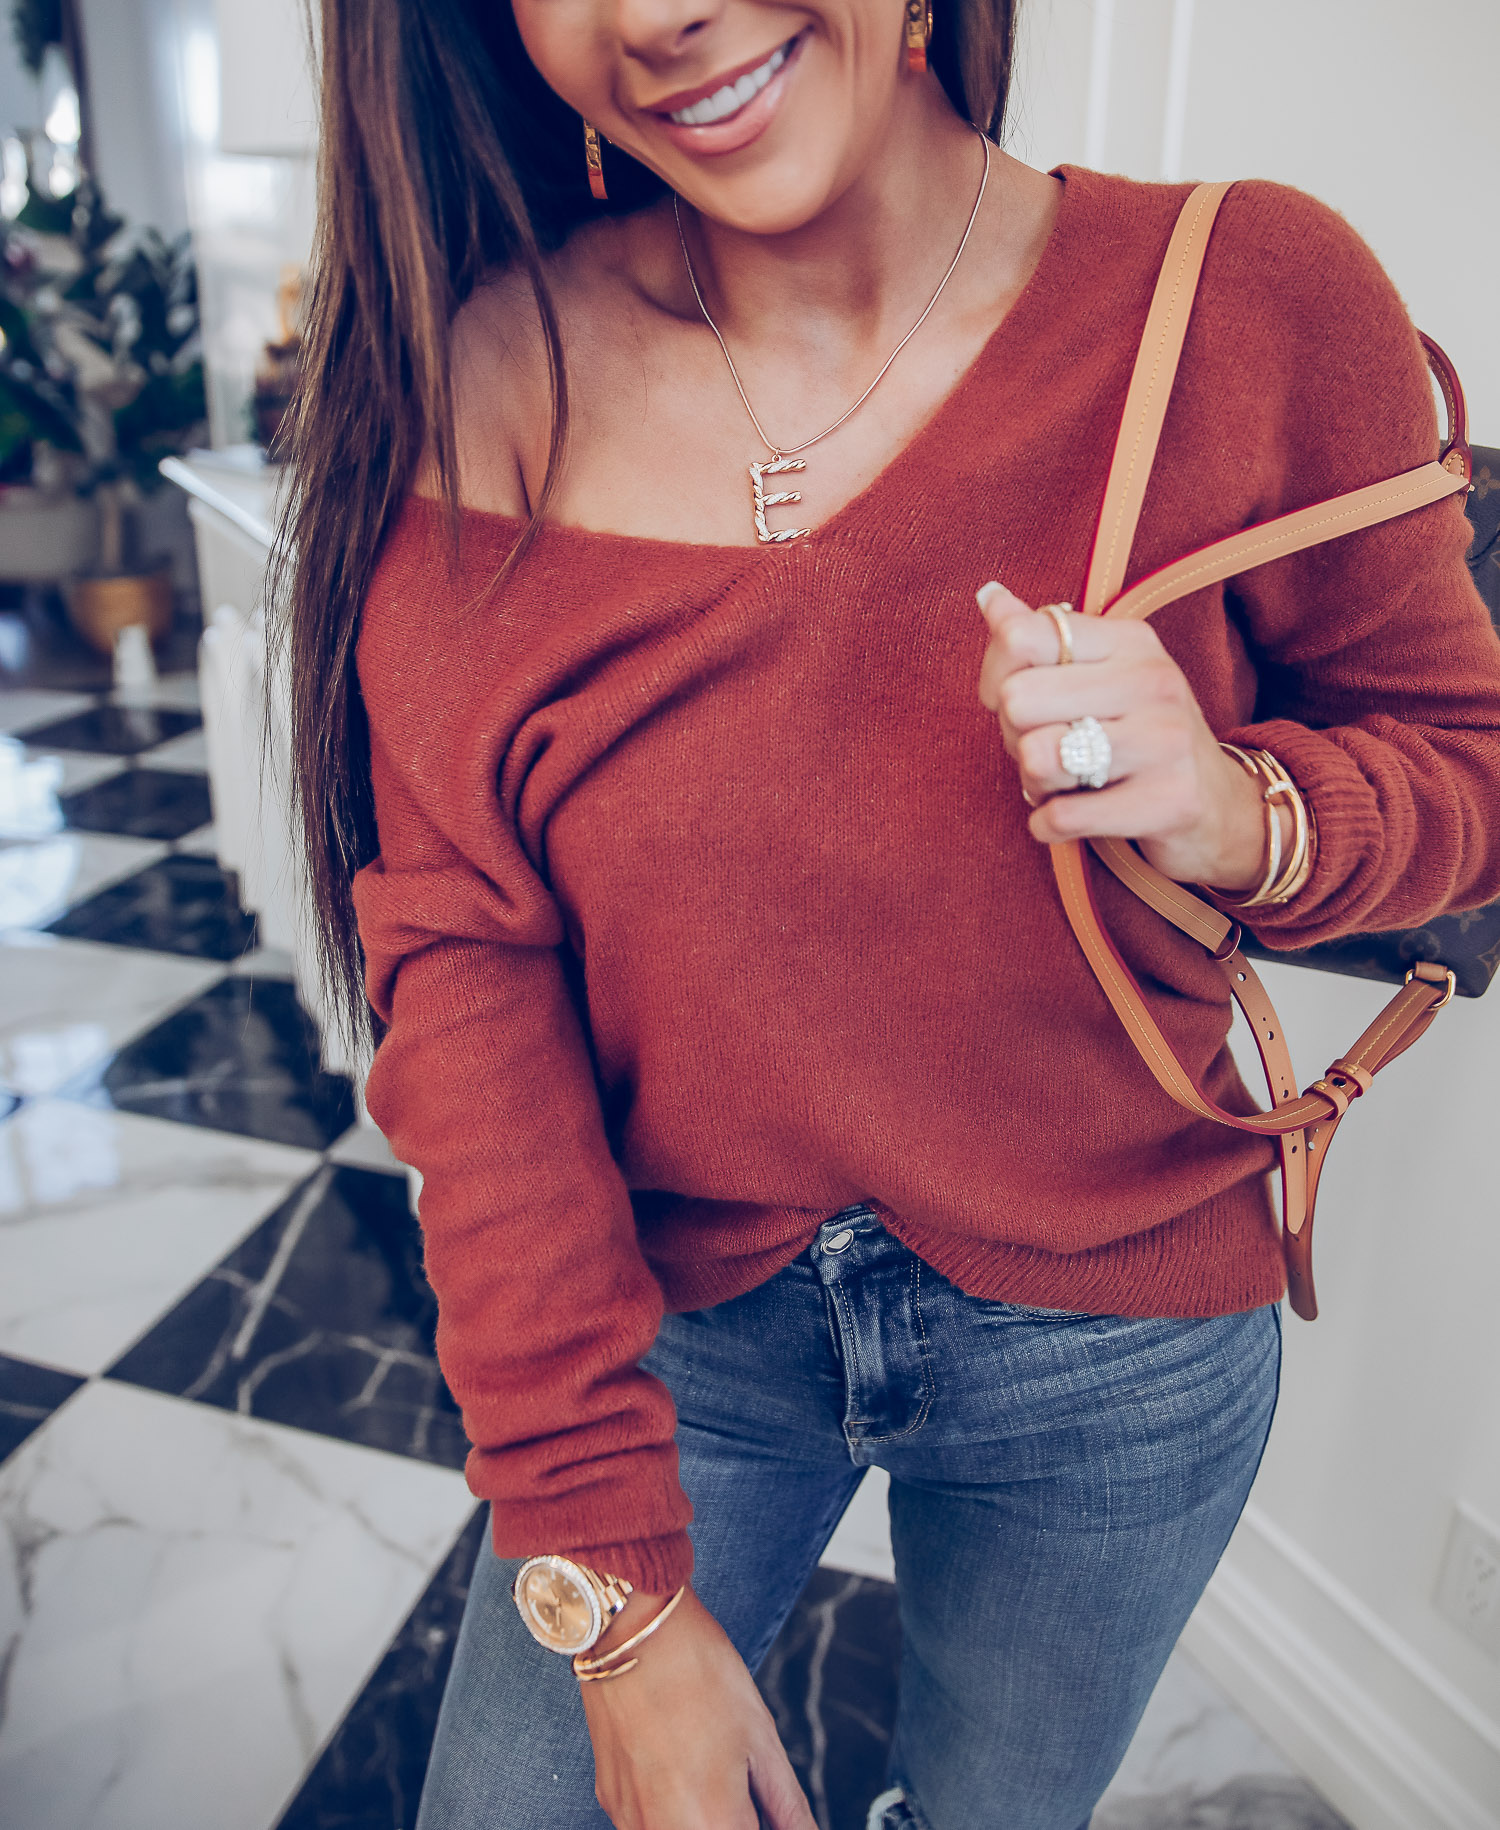 Nordstrom gift guide ideas 2020, nadri bracelets, louis vuitton montisouris PM, emily gemma-6 |Last Minute Gift Ideas by popular US life and style blog, The Sweetest Thing: image of Emily Gemma wearing a Leith sweater, nadri bracelets, louis vuitton montisouris PM, Good American jeans, Louis Vuitton earrings, and Ettika necklace.